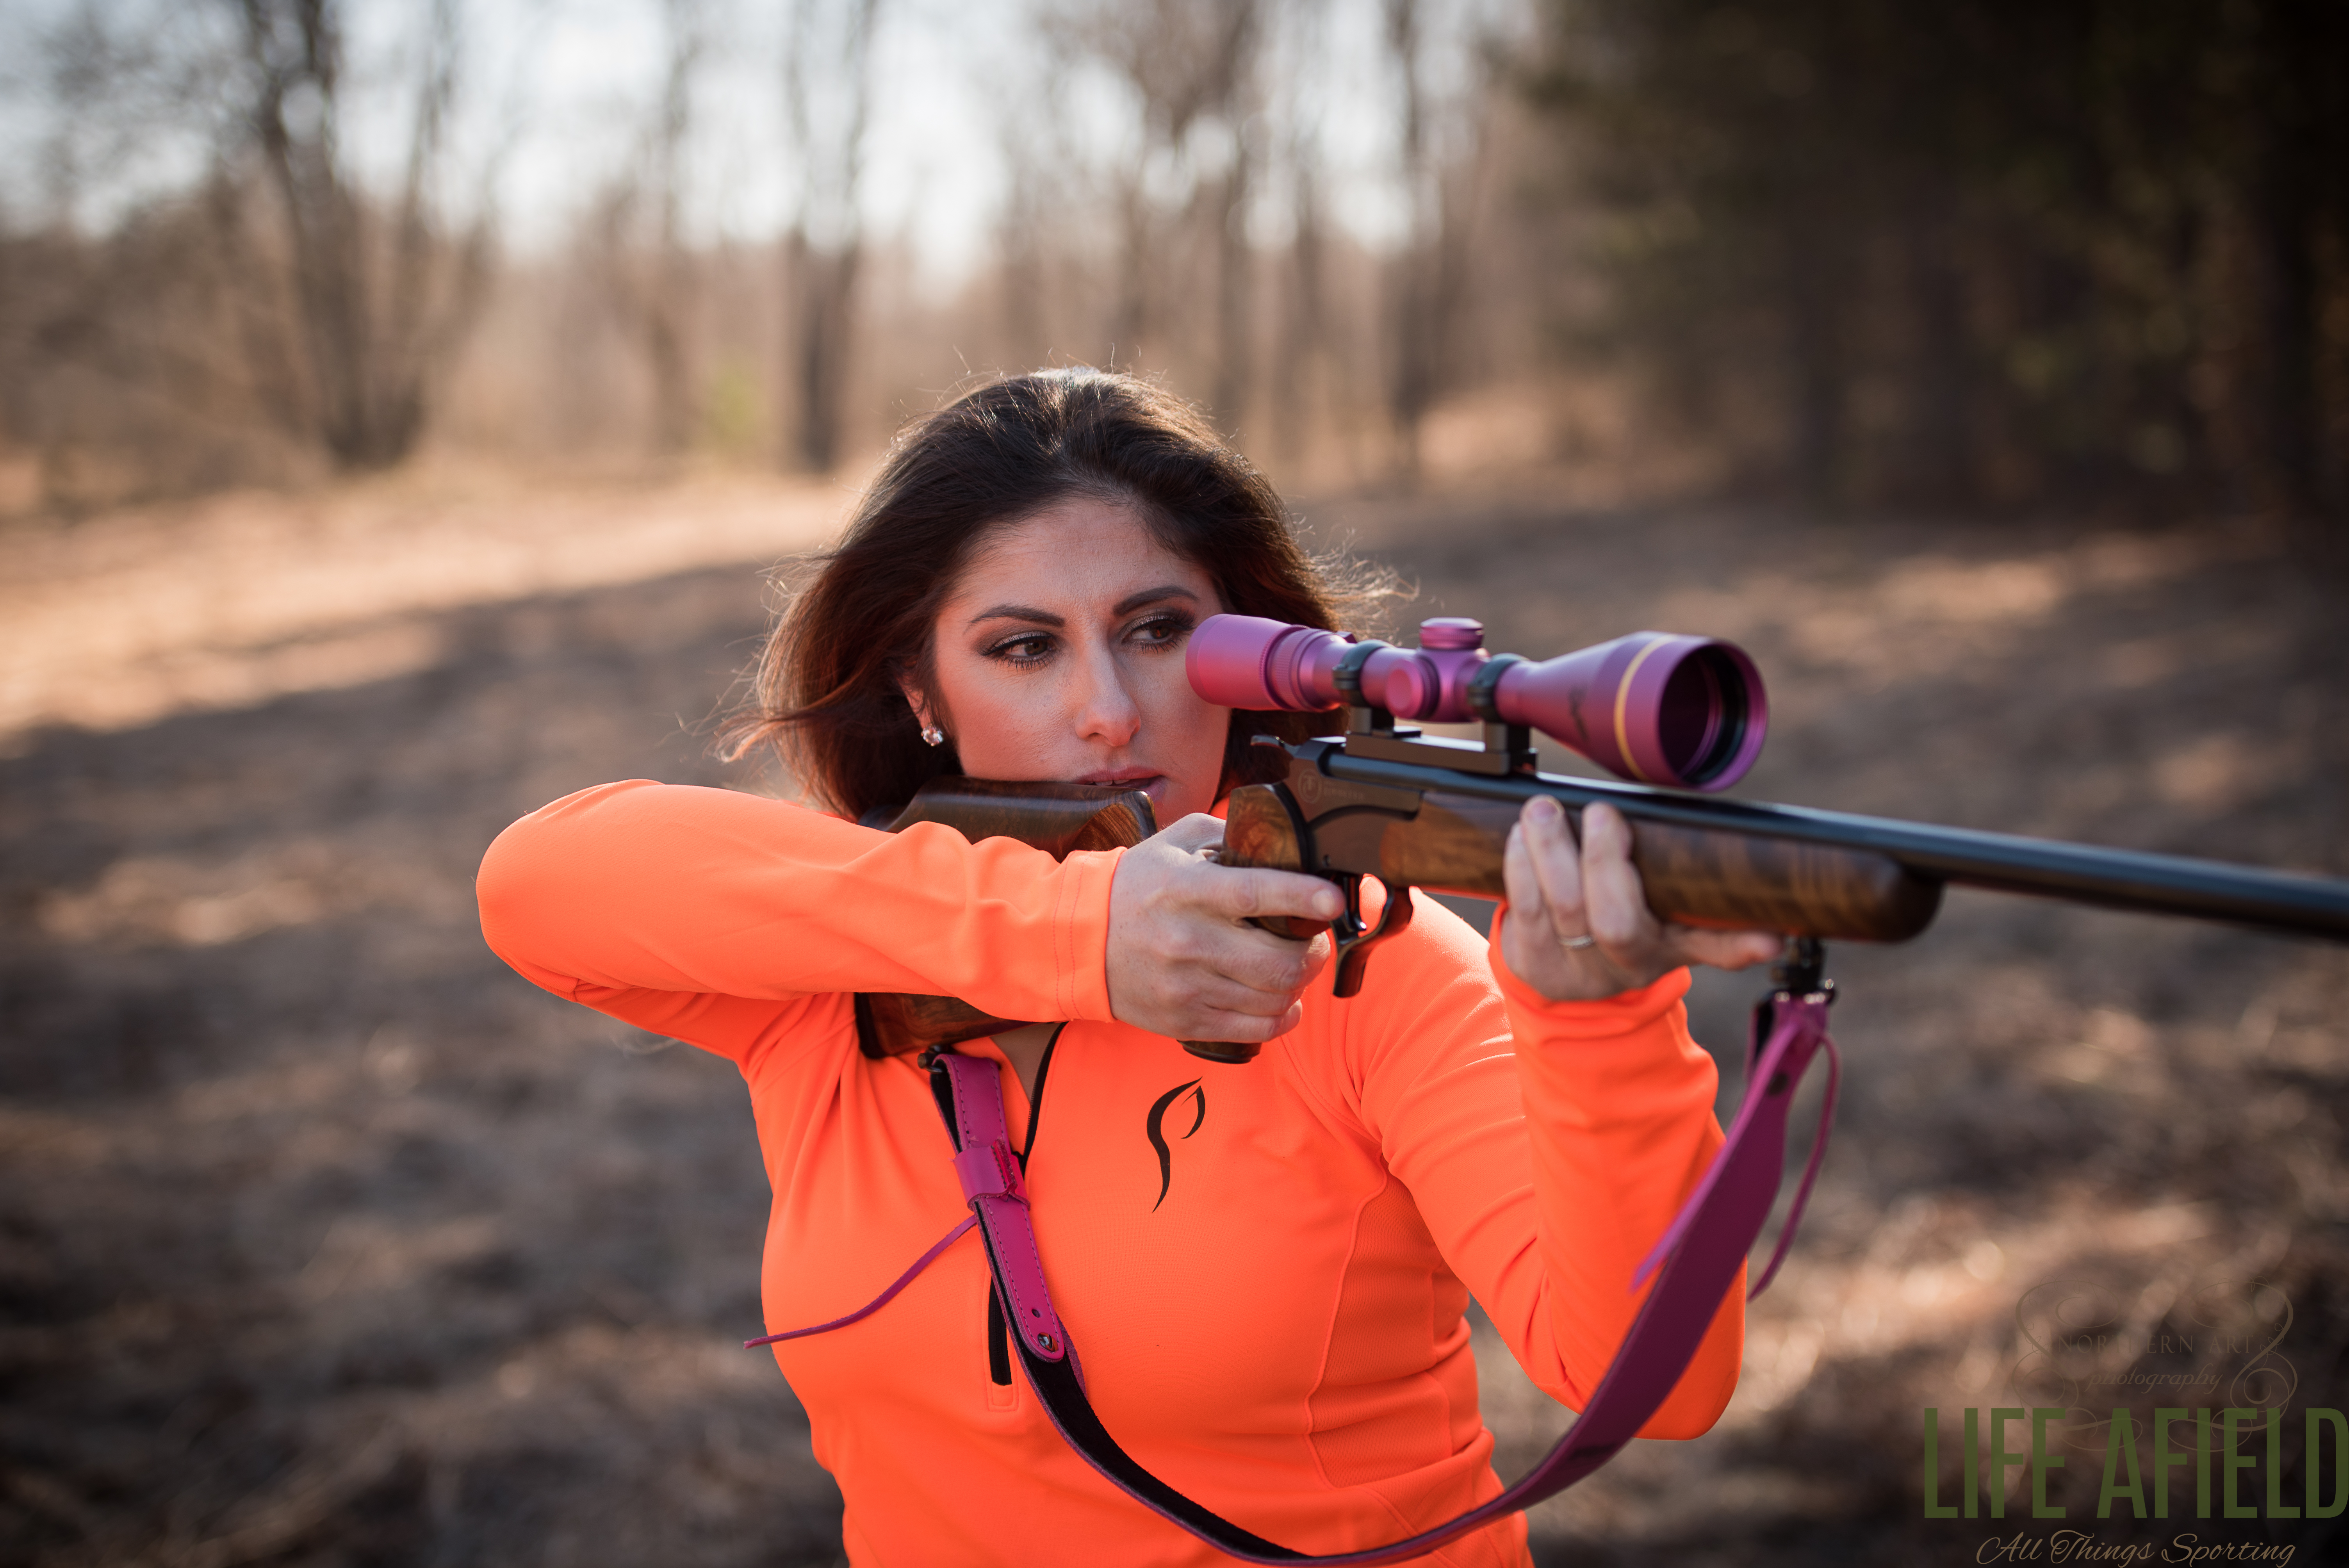 lady shooter lifestyles